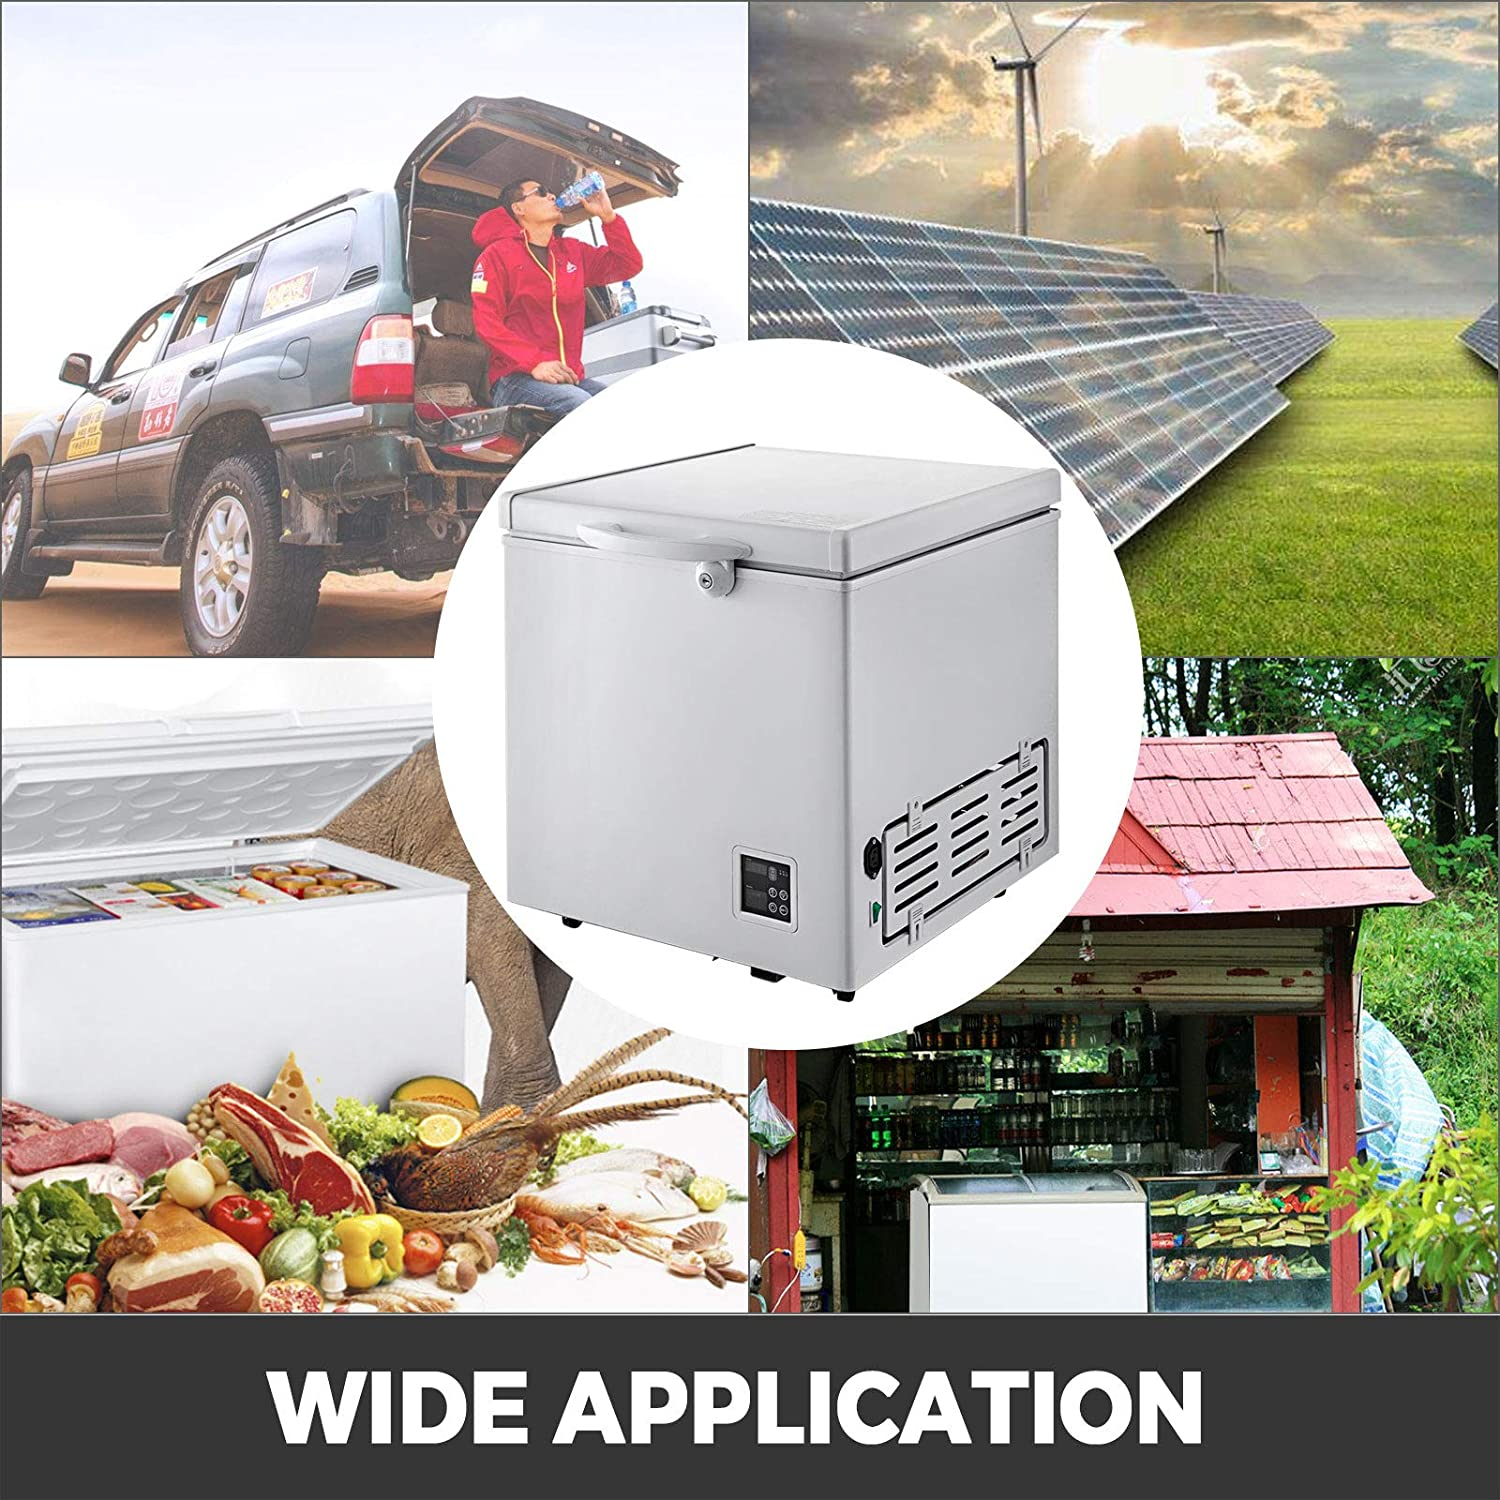 VBENLEM Chest Freezer,63 Quart Commercial RV Deep Freezer,2.1 cu.ft Compact Vehicle Electric Cooler Fridge 12V//24V DC With Lock for Car Home Camping Truck Party,-0.4℉-32℉ Suit for Solar Power